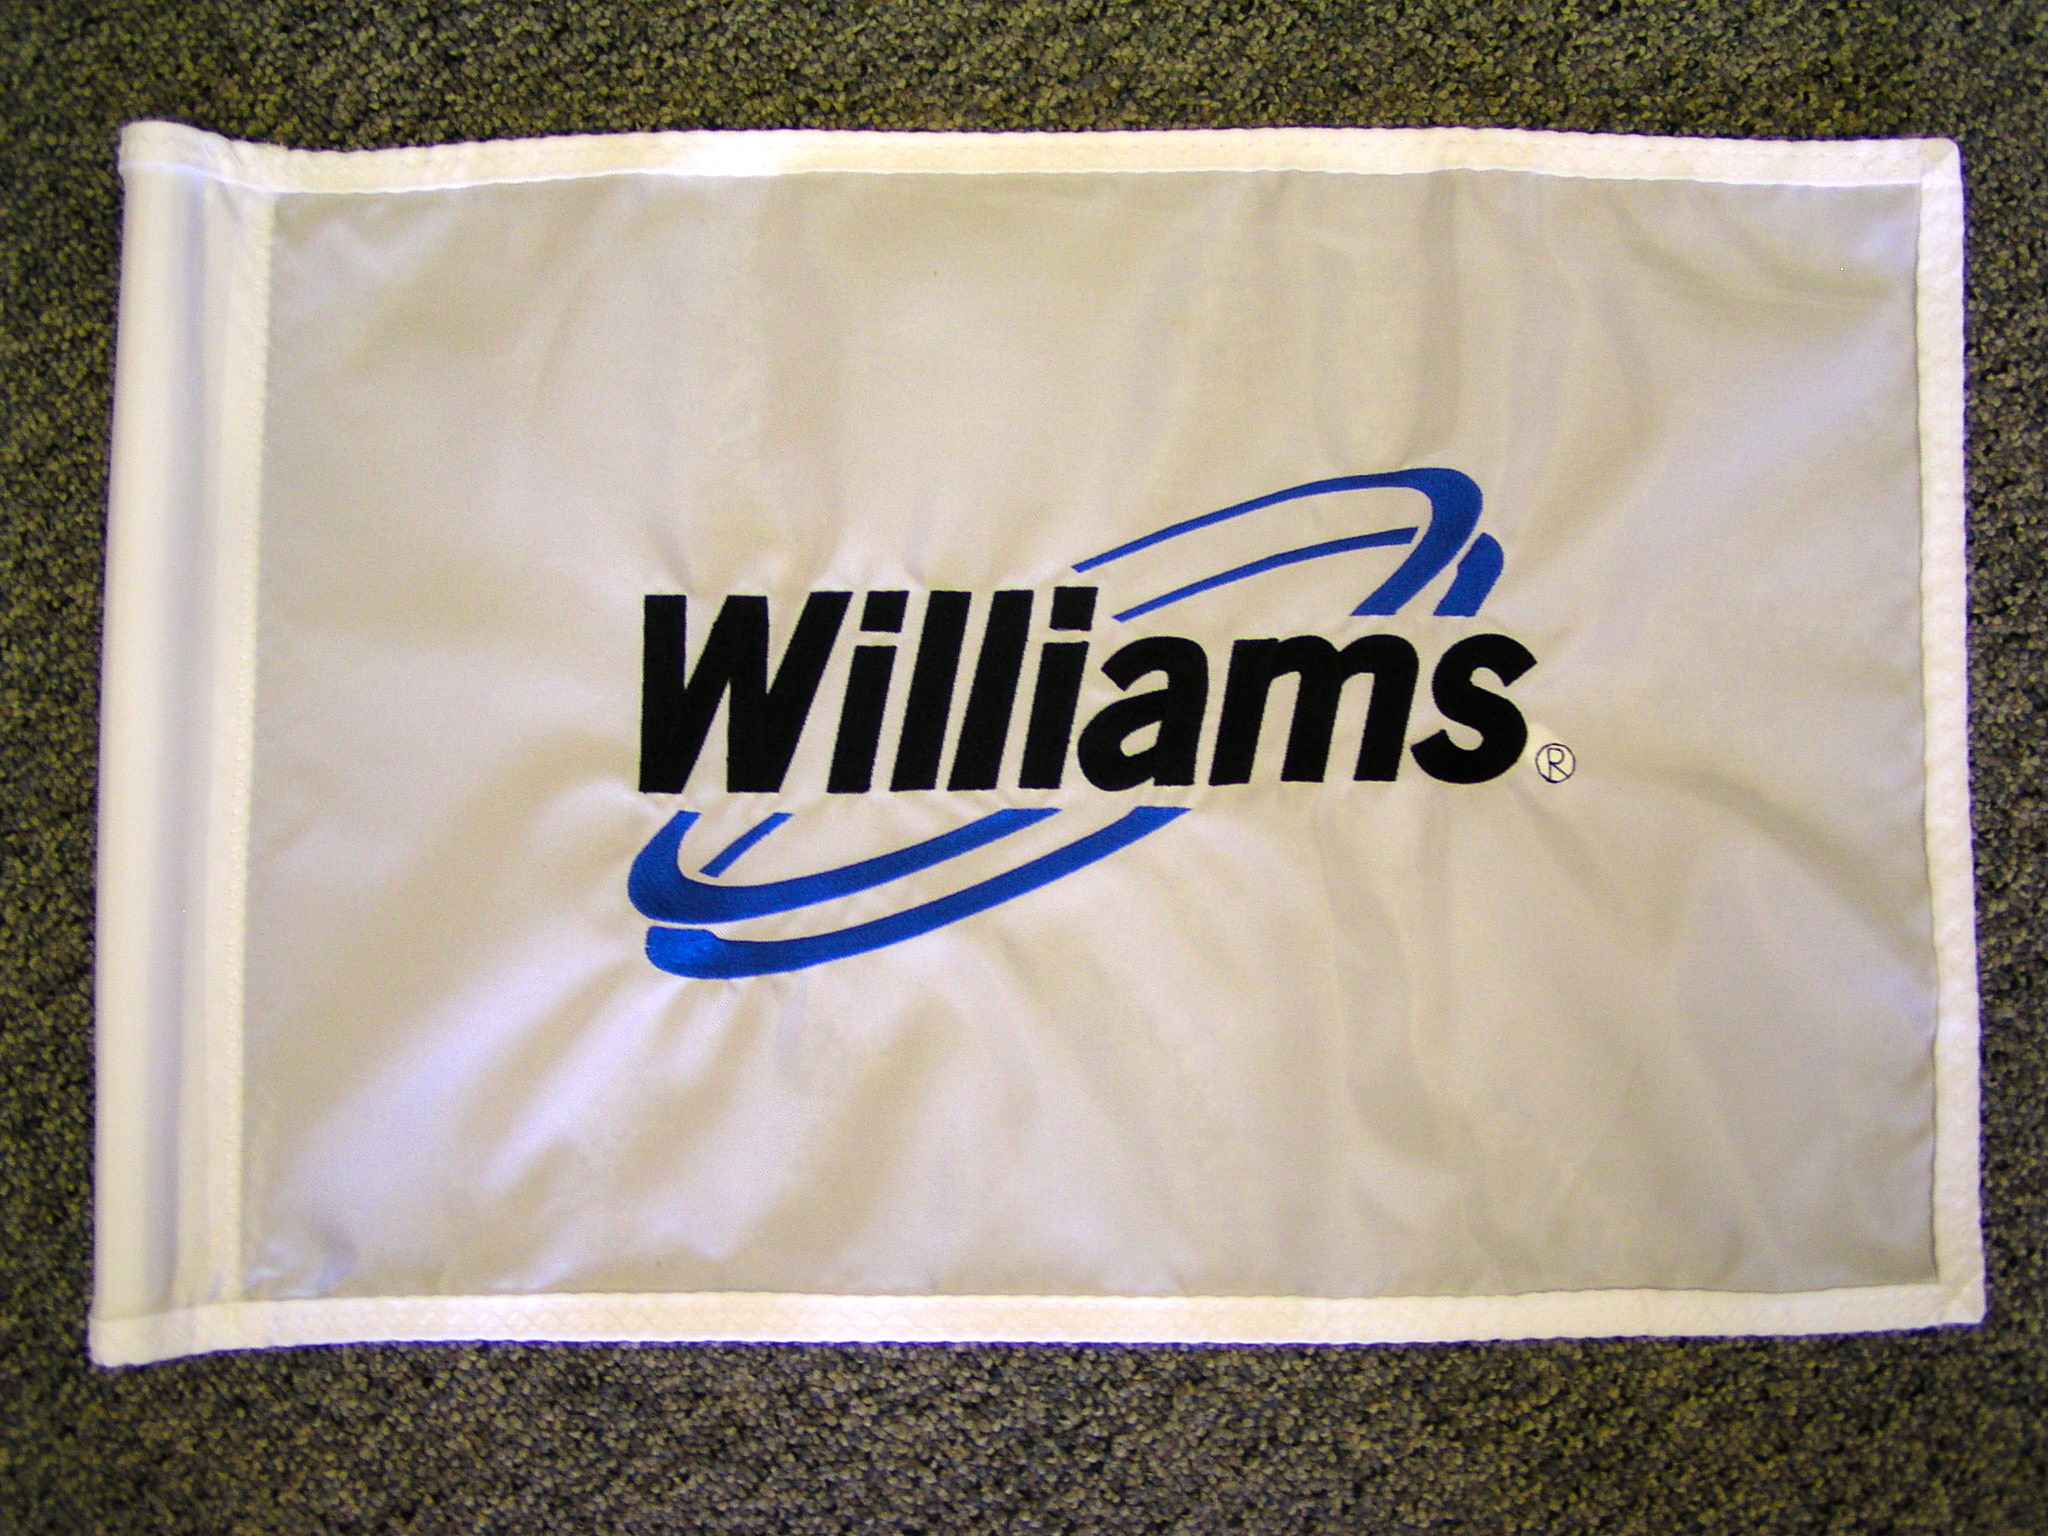 Embroidered logo on golf flag.